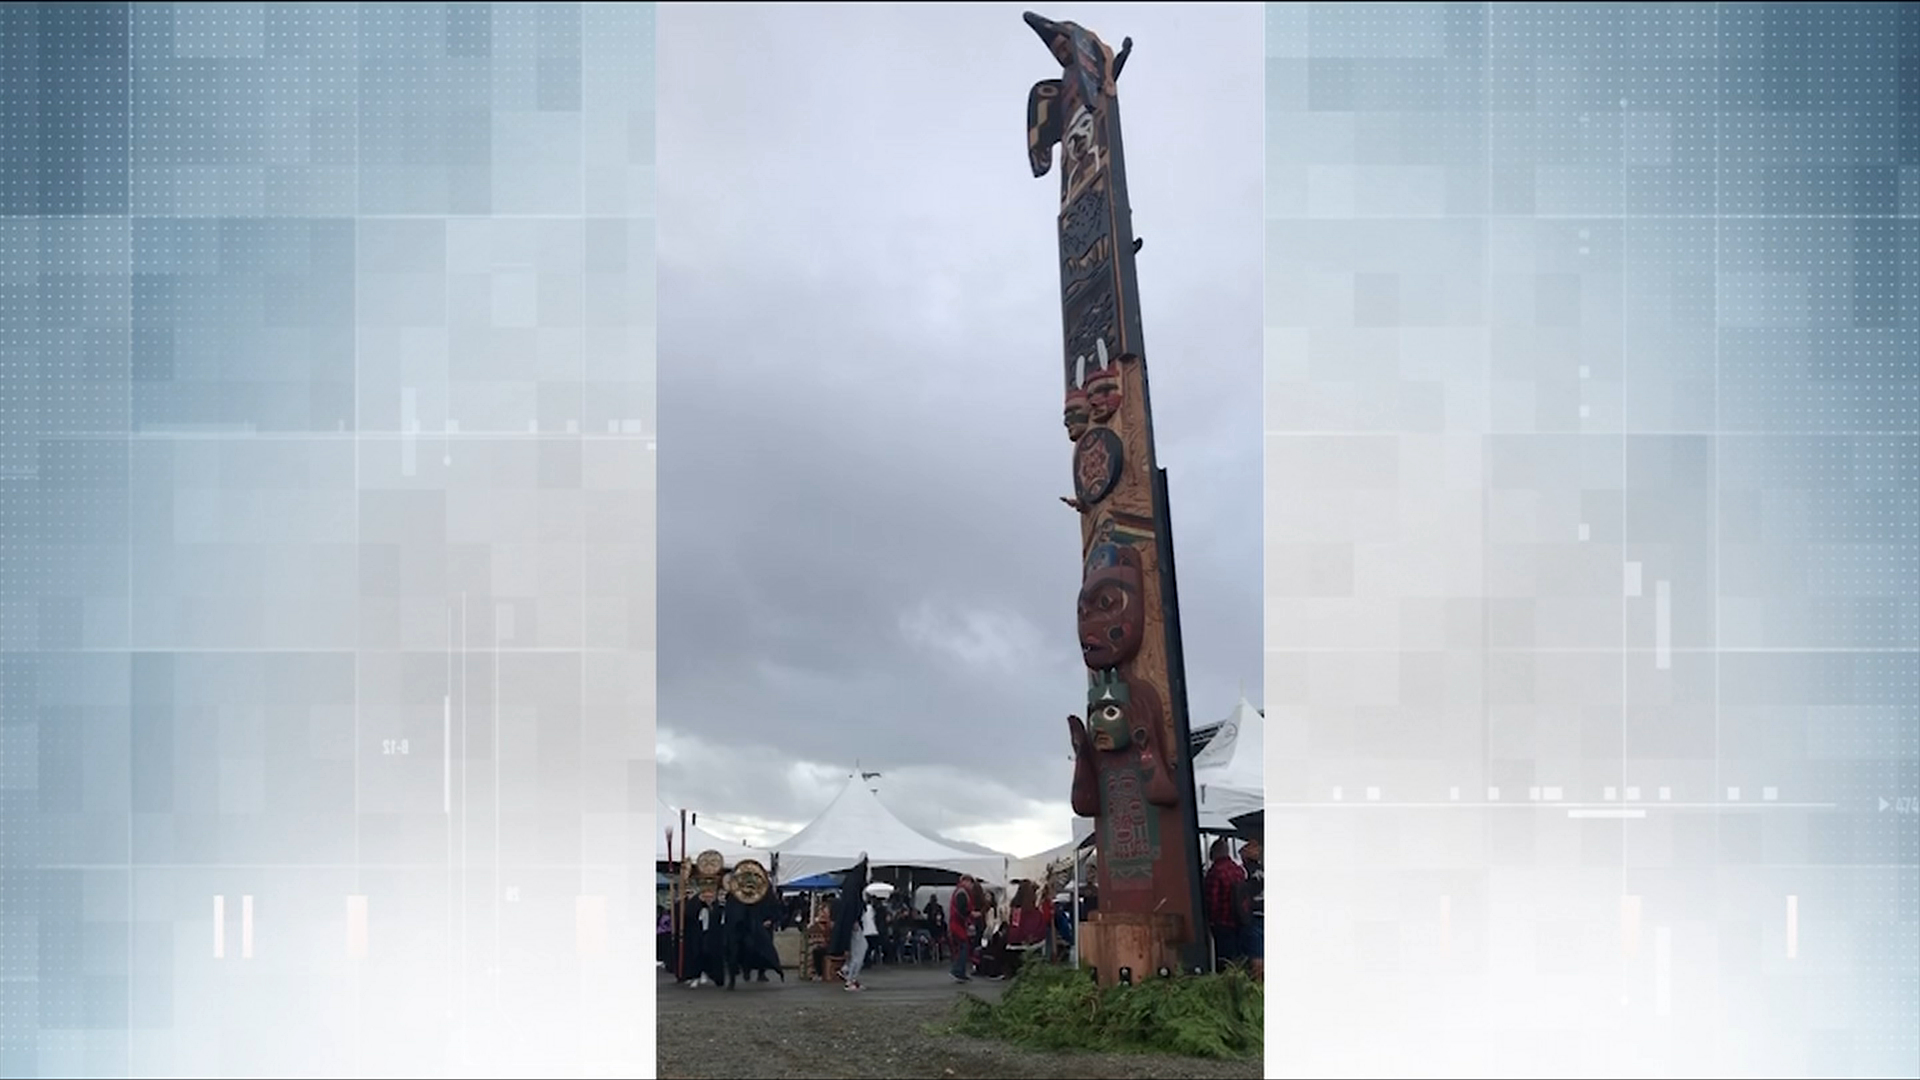 Totem pole installed on Nuu-chah-nulth territory in Port Alberni